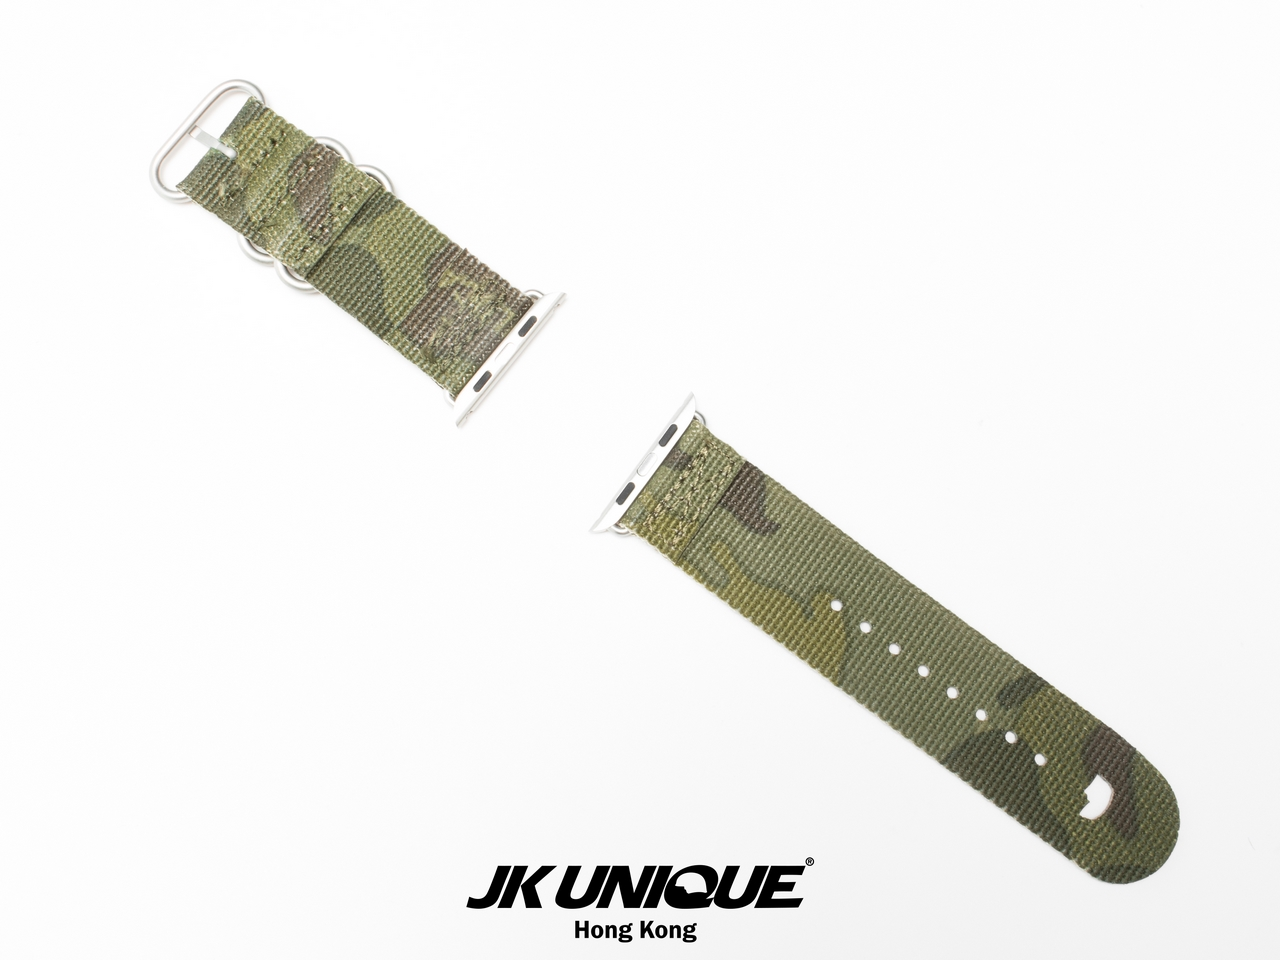 JK-UNIQUE-CAMO-NATO-Apple-Watch-Strap-42mm-SV-Multicam-Tropic-2 (1280).jpg